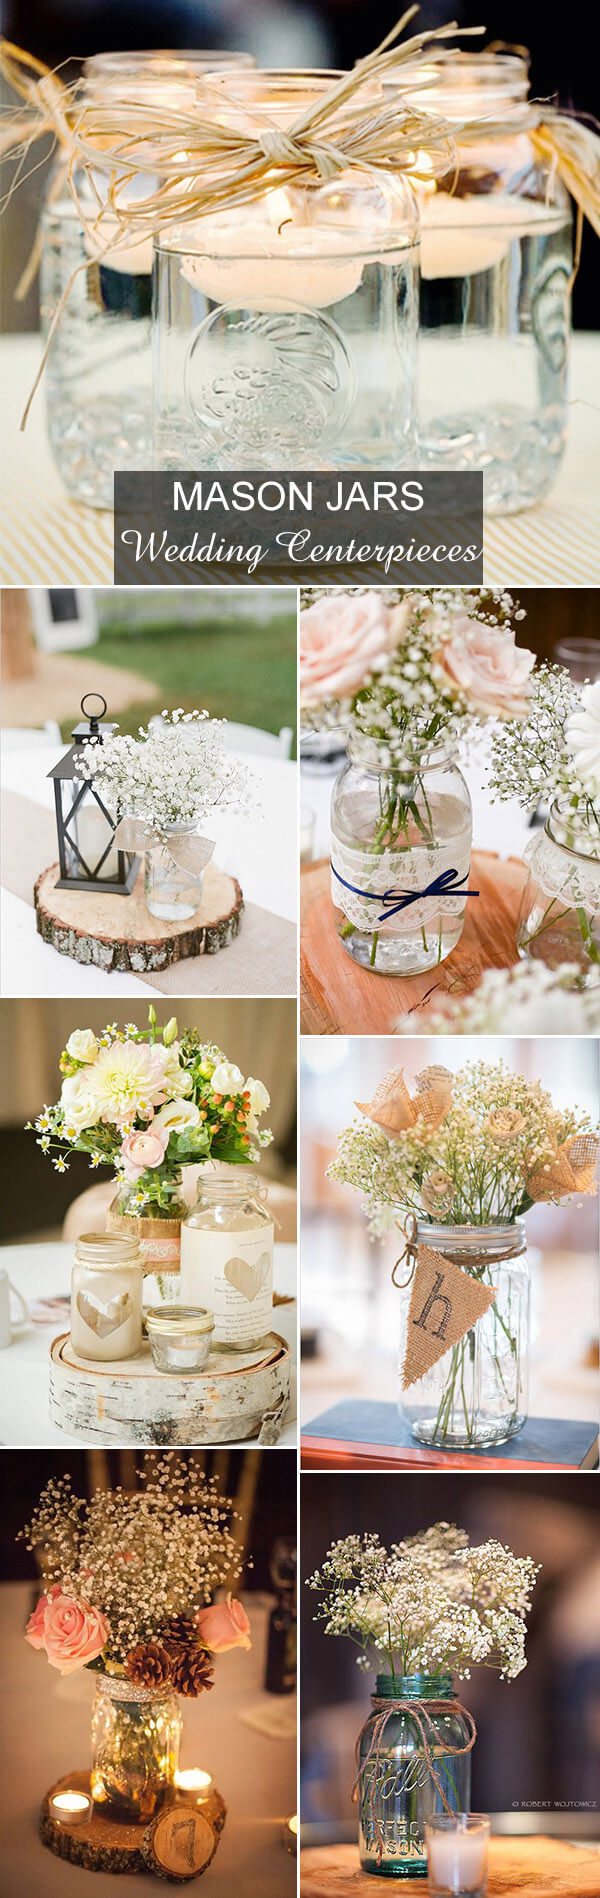 Wedding Mason Jar Centerpieces | Creative & Rustic Backyard Wedding Ideas For Summer & Fall